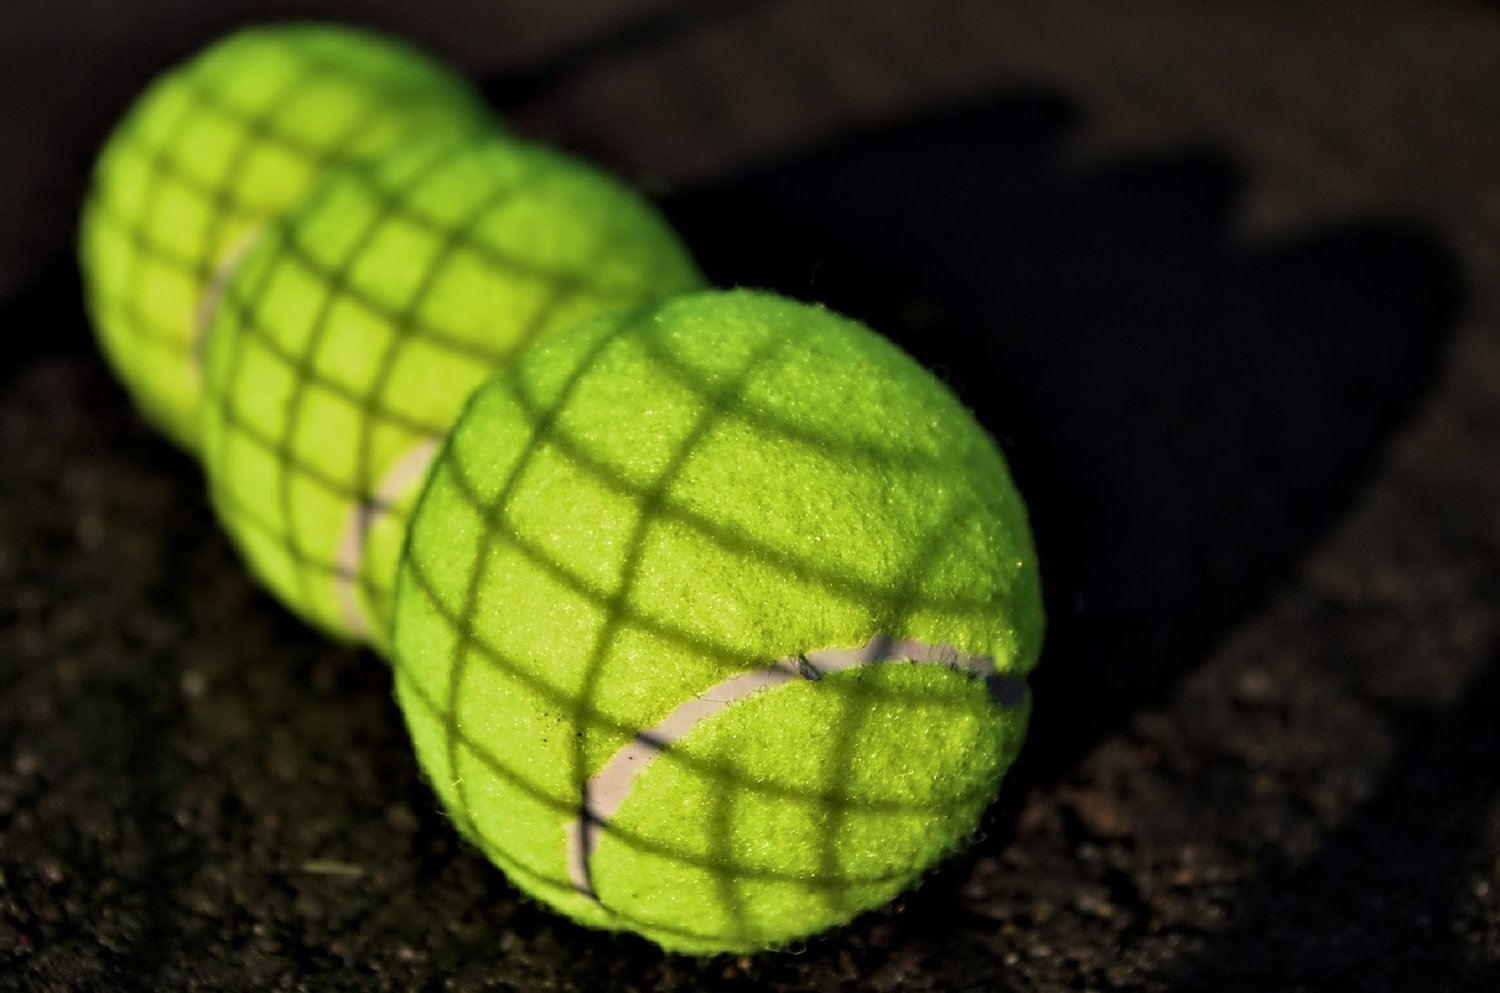 Tennis-Ball-2-big.jpg